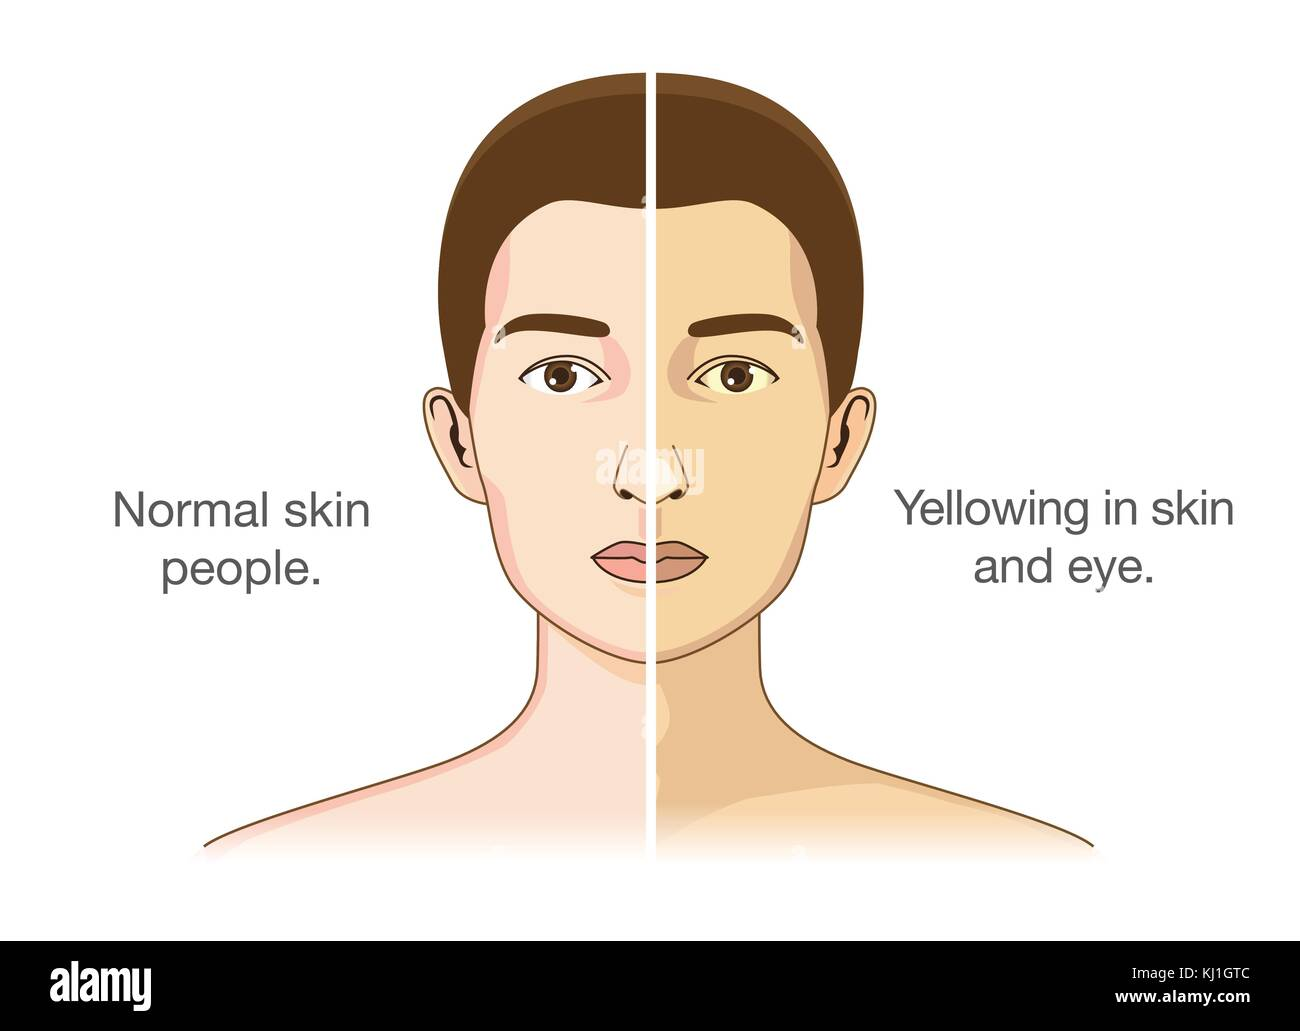 Normal people and yellowing of the eyes and skin. - Stock Vector